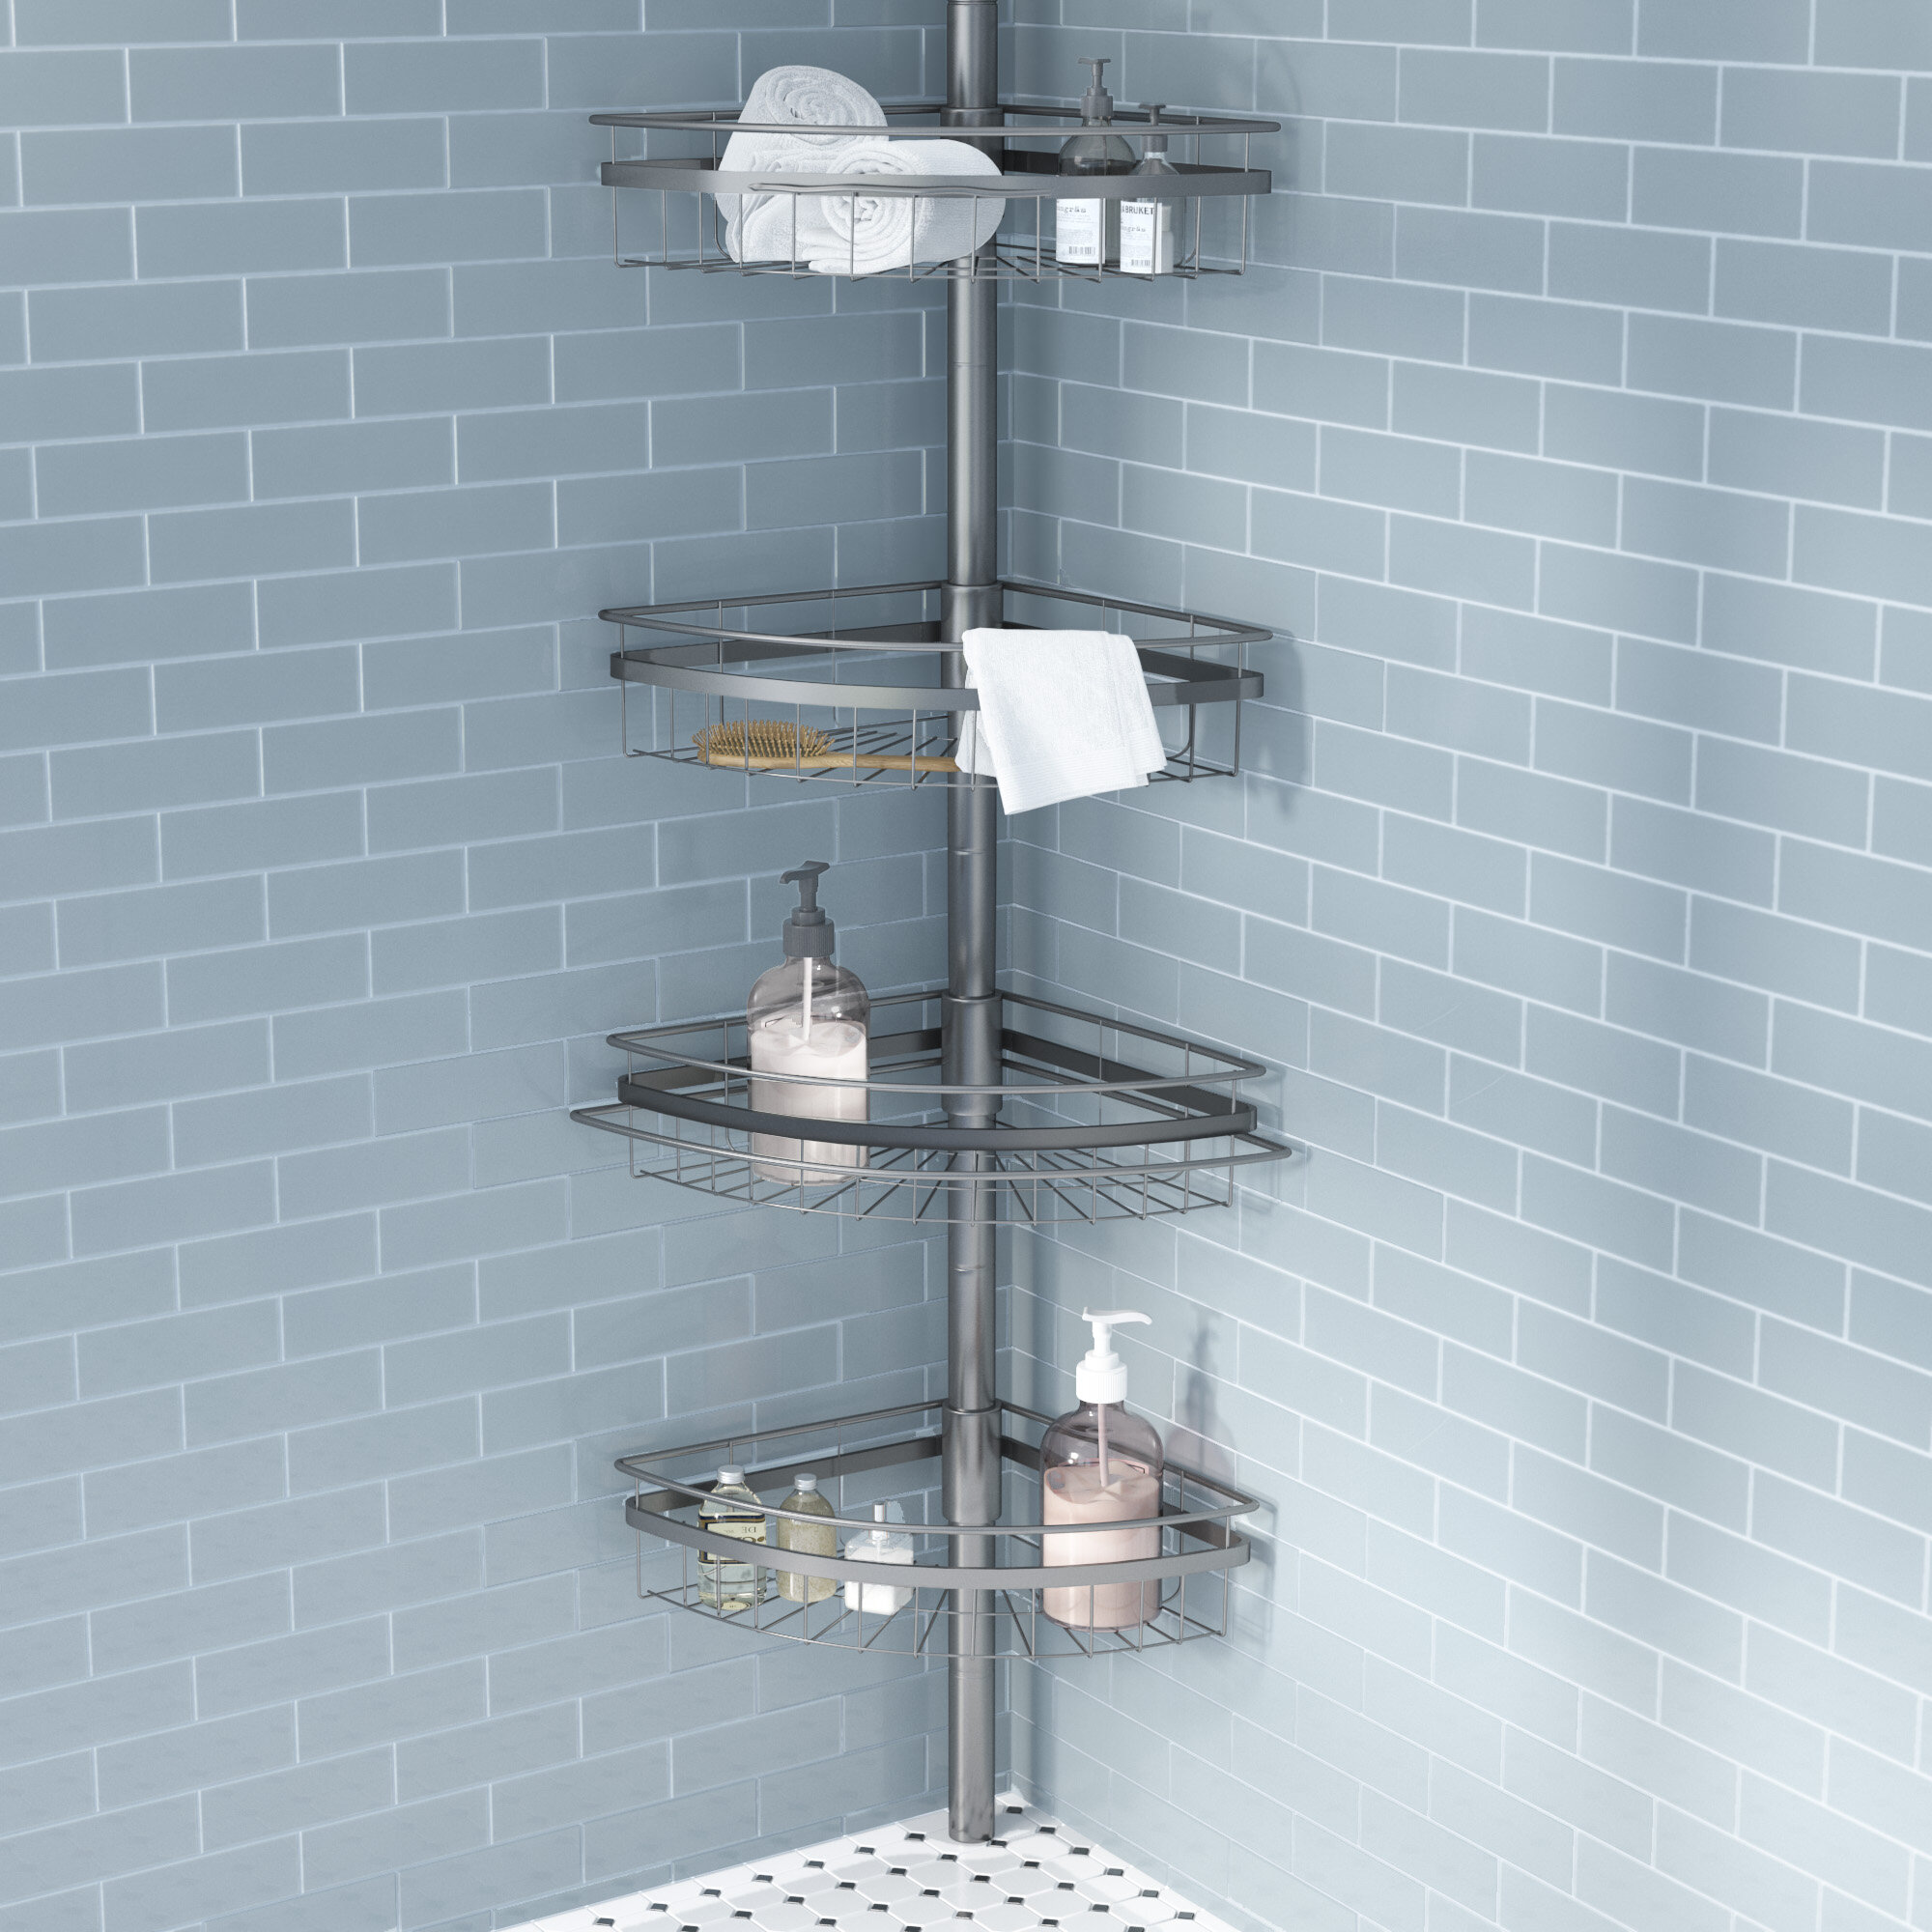 Contemporary Shower Organiser Pole Pictures - Bathtub Ideas - dilata ...